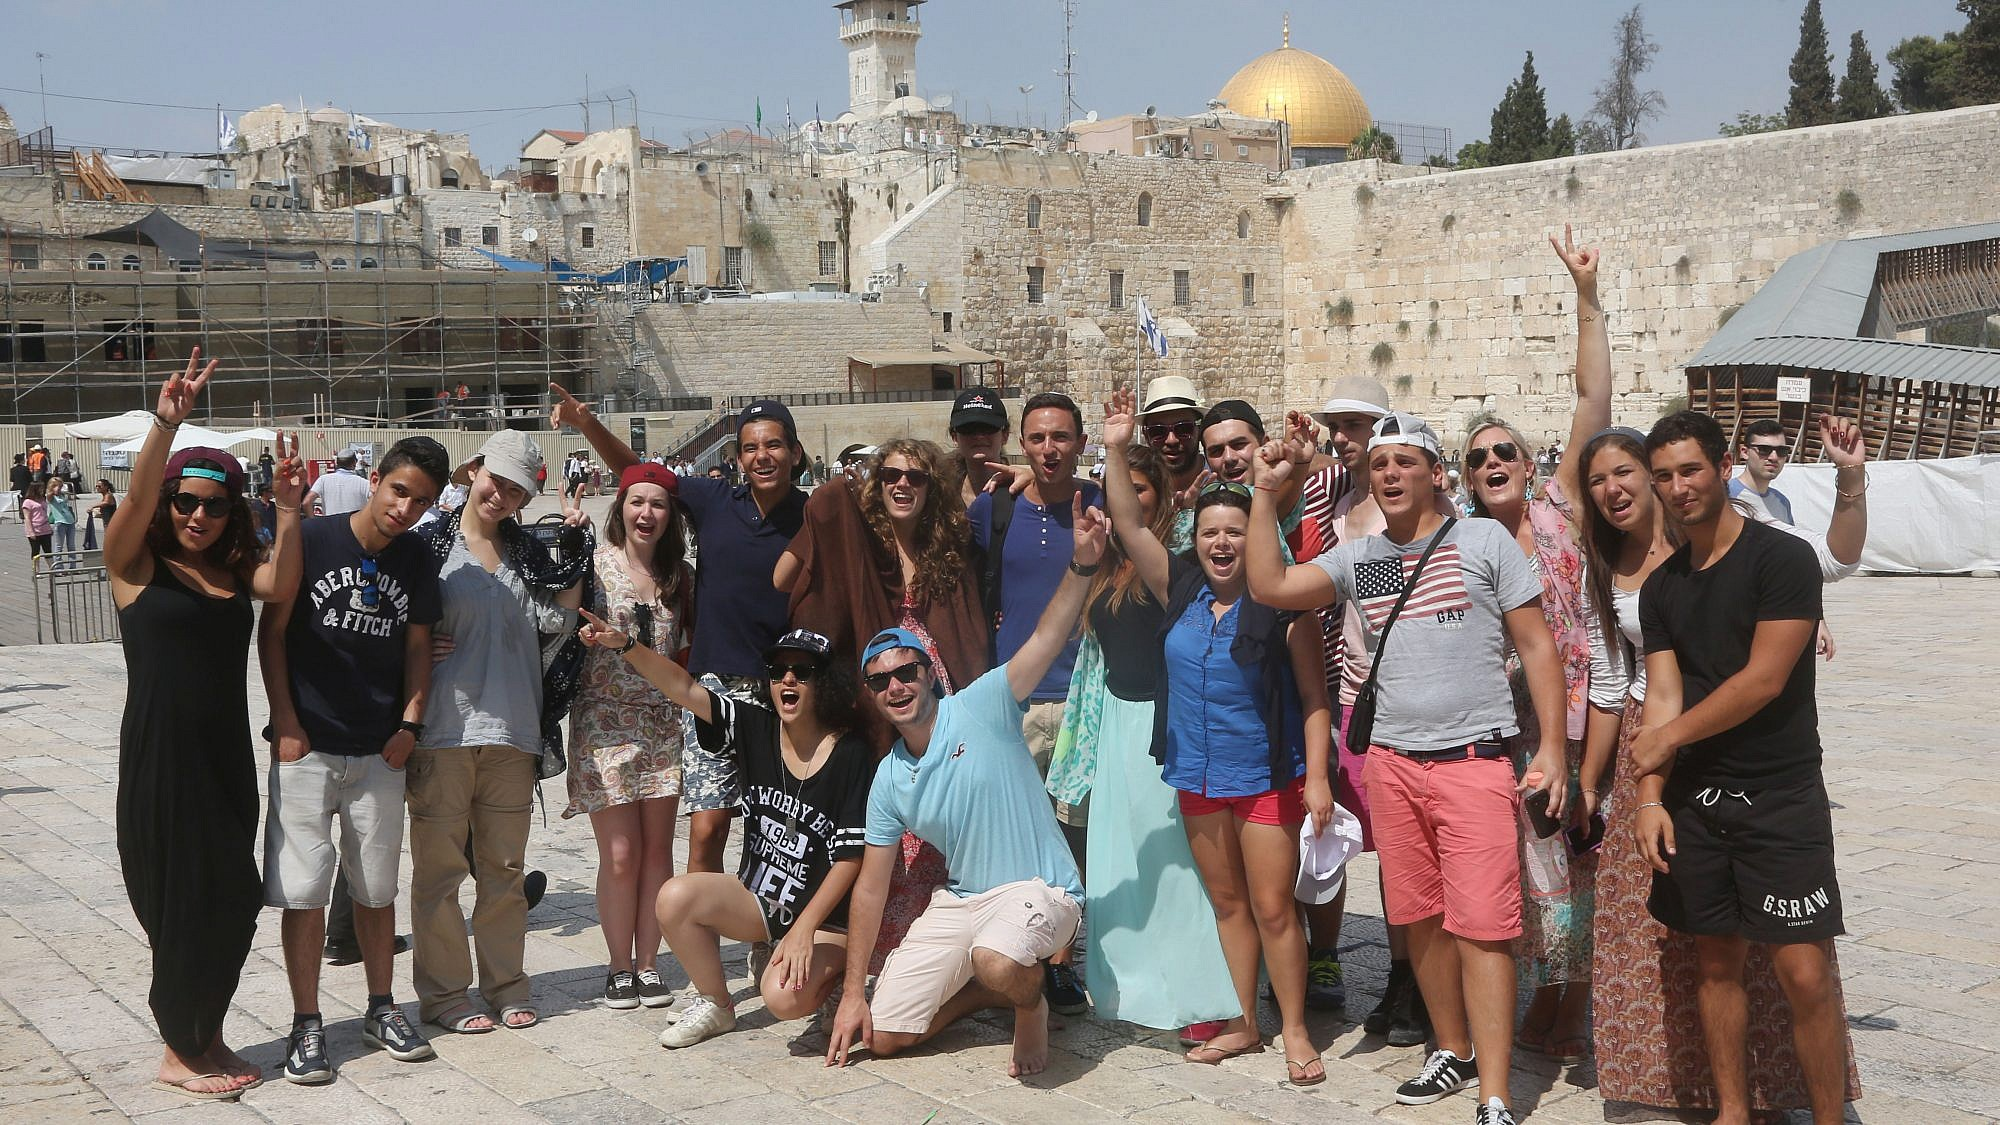 Taglit Birthright participants visit at the Western Wall in the Old City of Jerusalem on Aug. 18, 2014. Photo by Flash90.